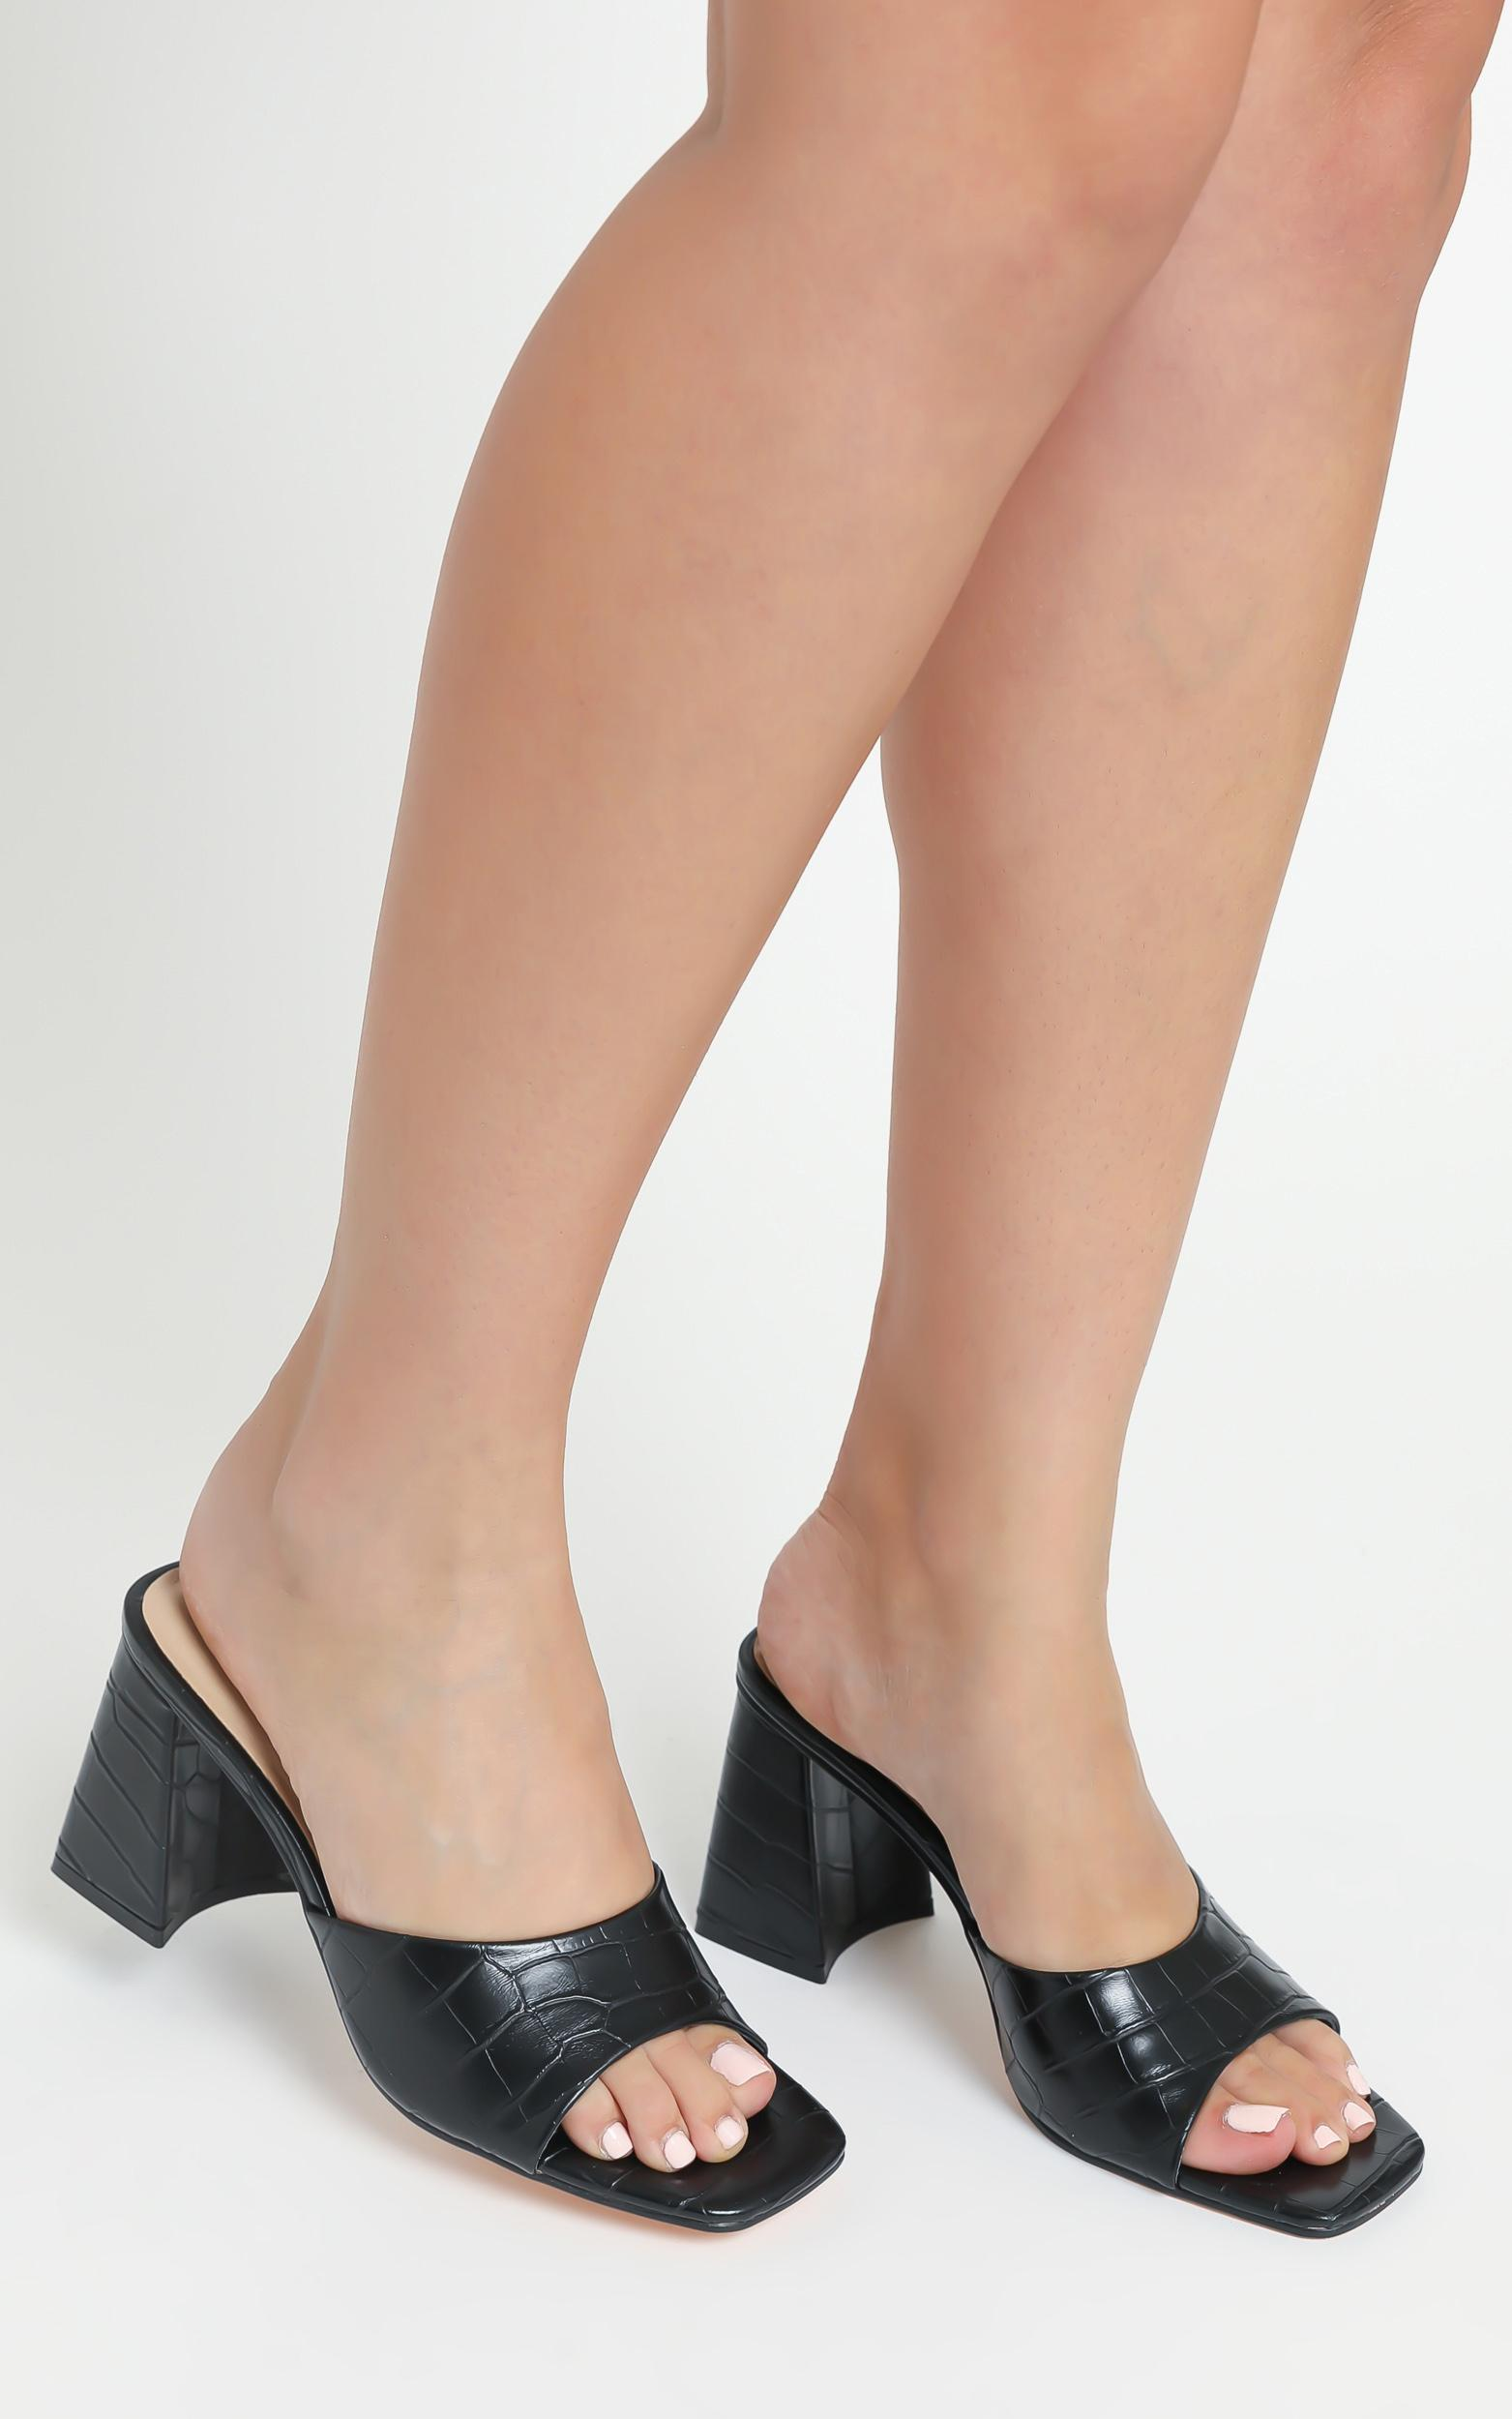 Therapy - Colina Heels in Black Croc - 05, BLK1, hi-res image number null